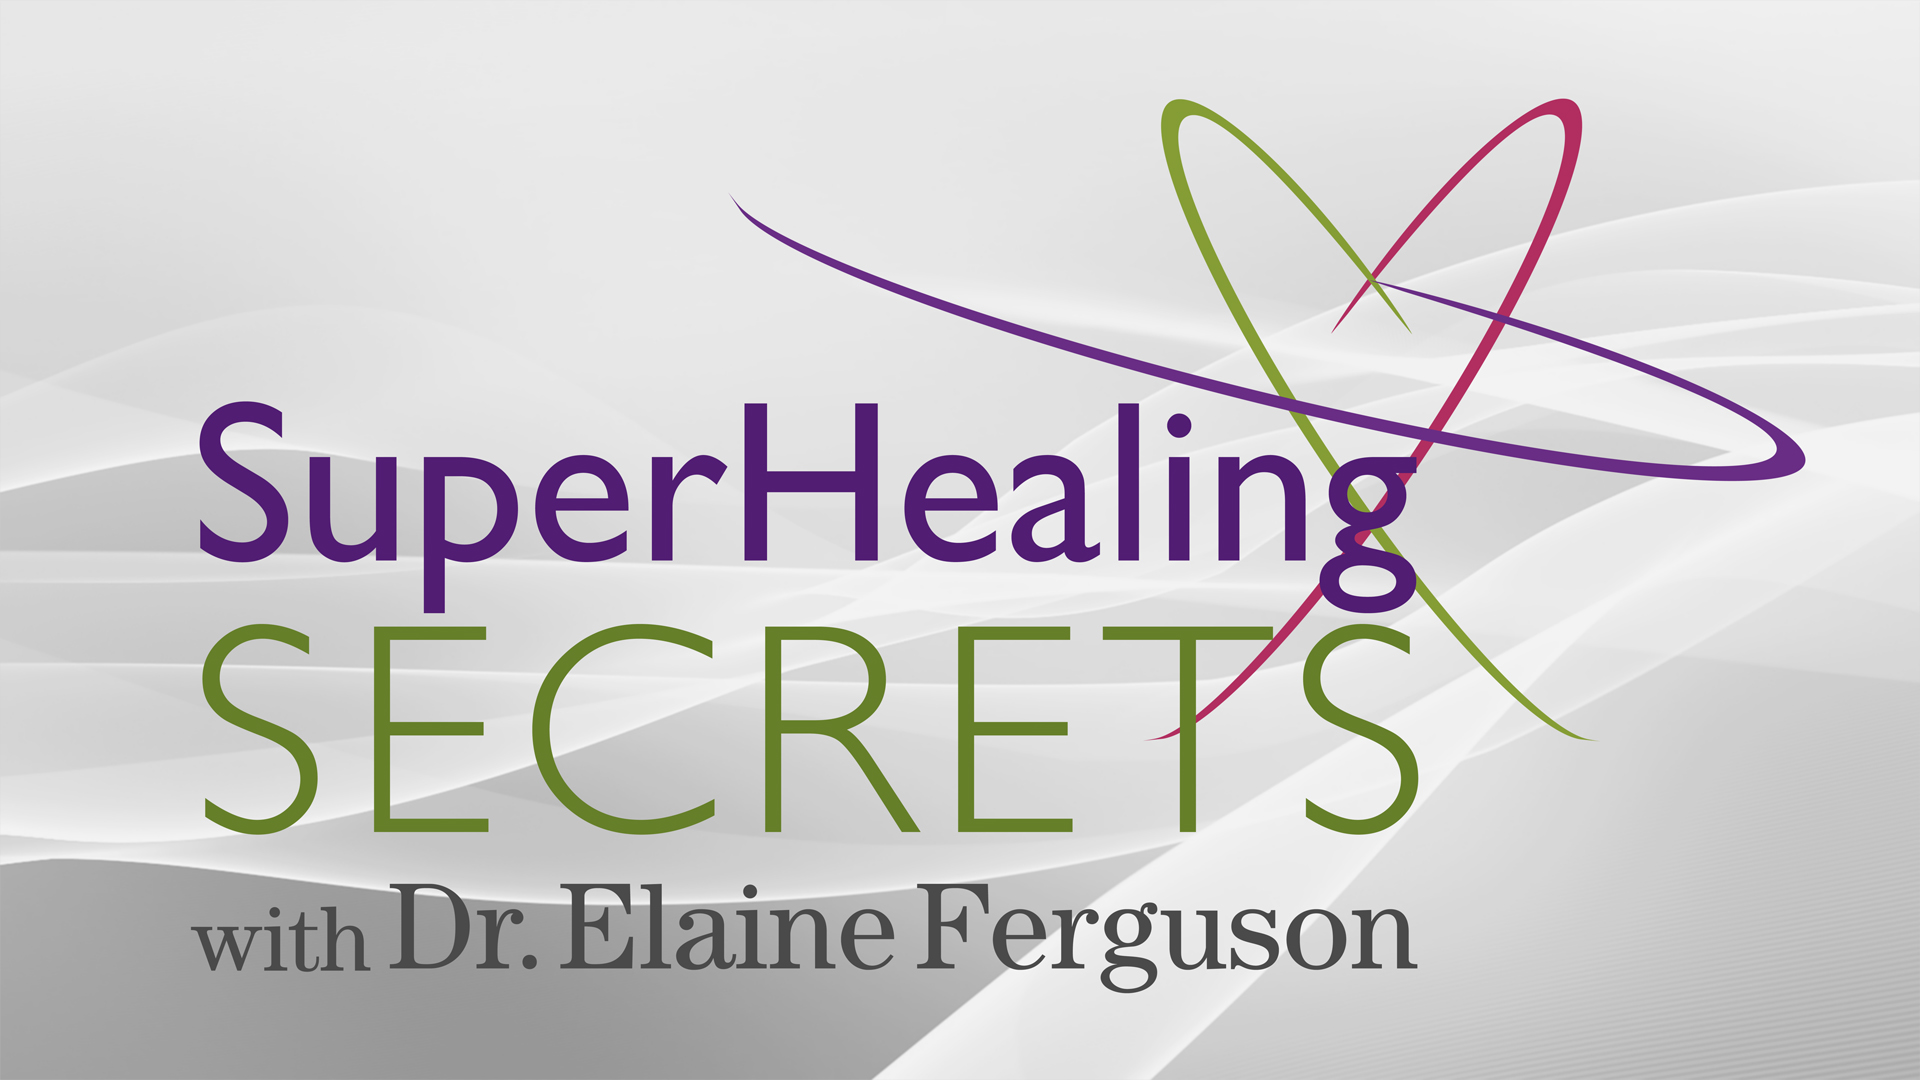 Now Playing More SuperHealing Secrets-Ask Dr. Elaine